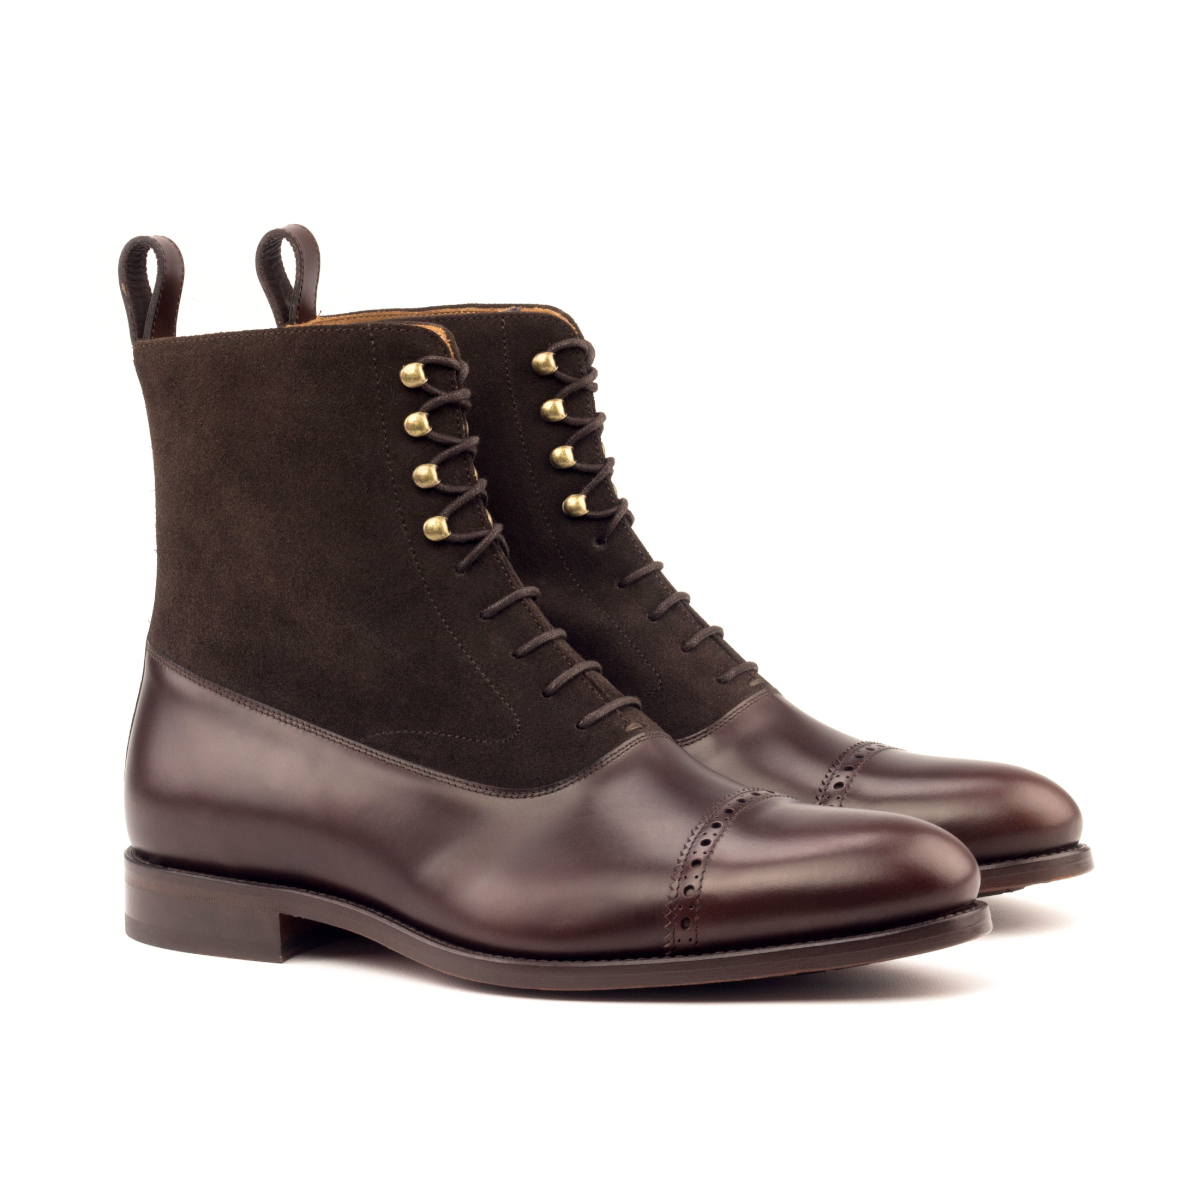 Brown suede and box calf Balmoral boot